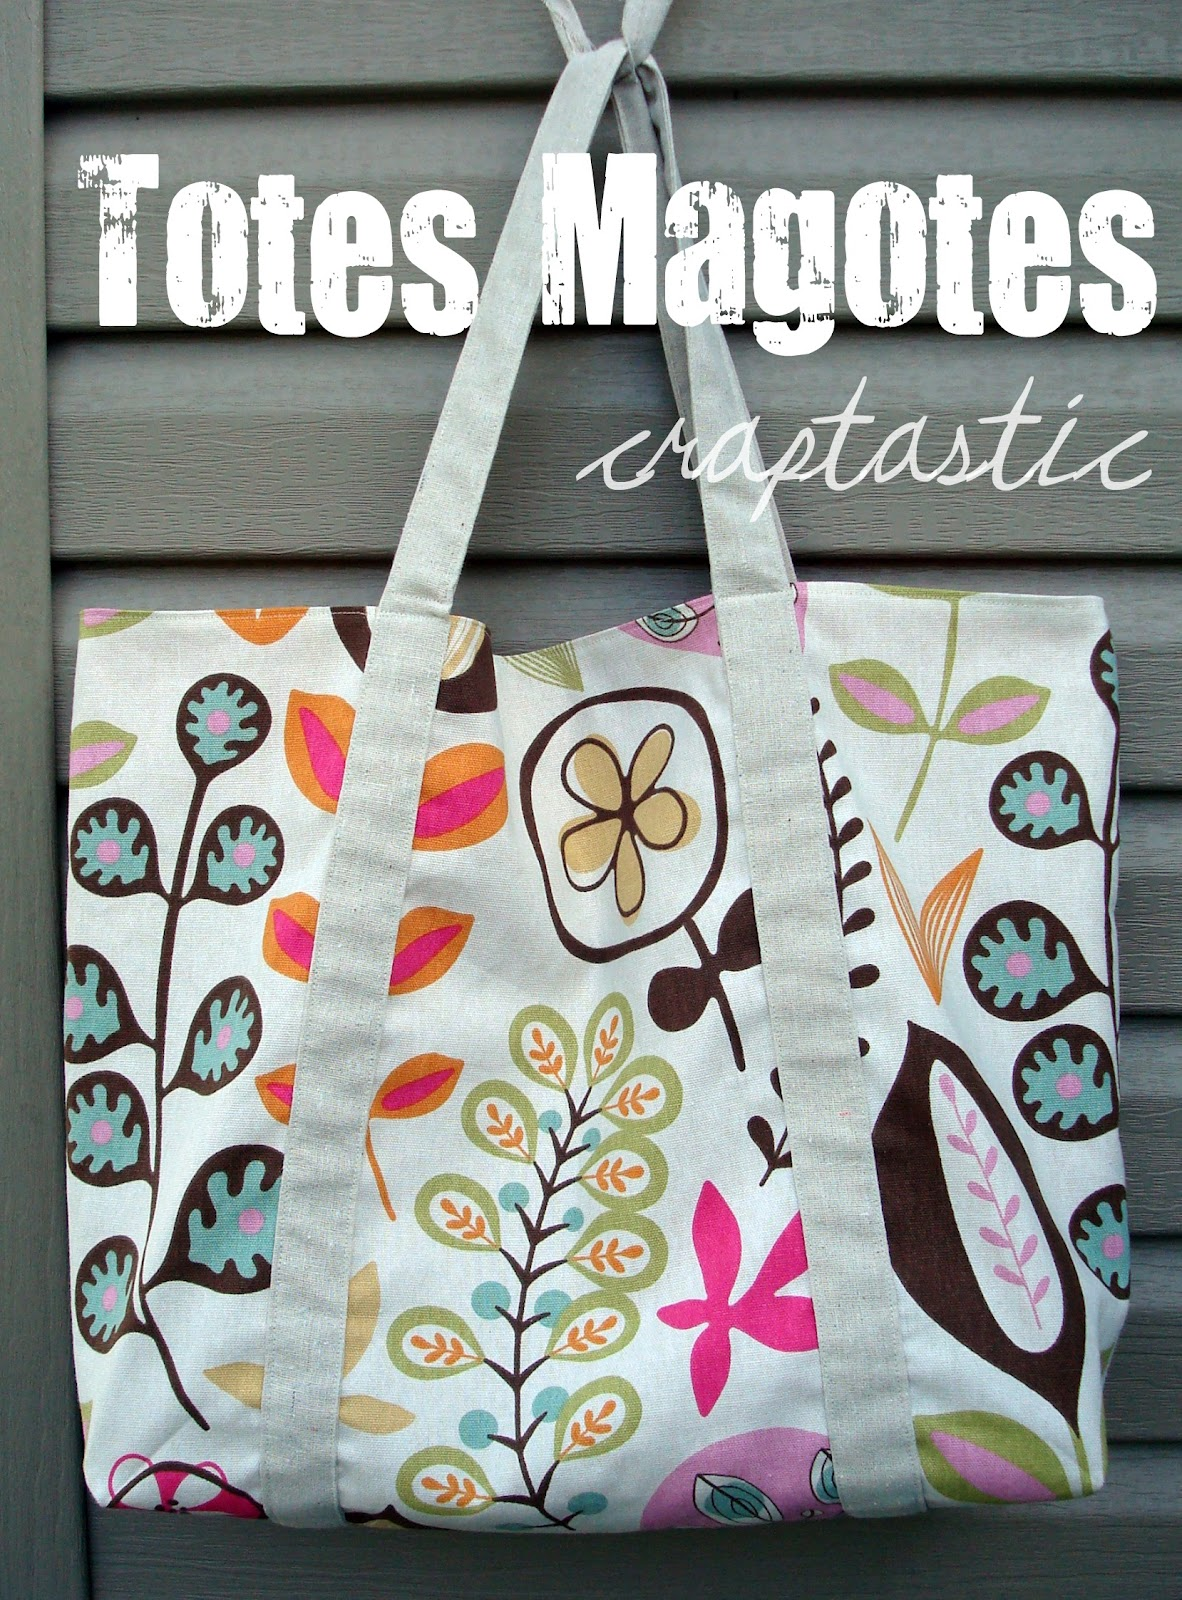 Download image totes magotes pc android iphone and ipad wallpapers